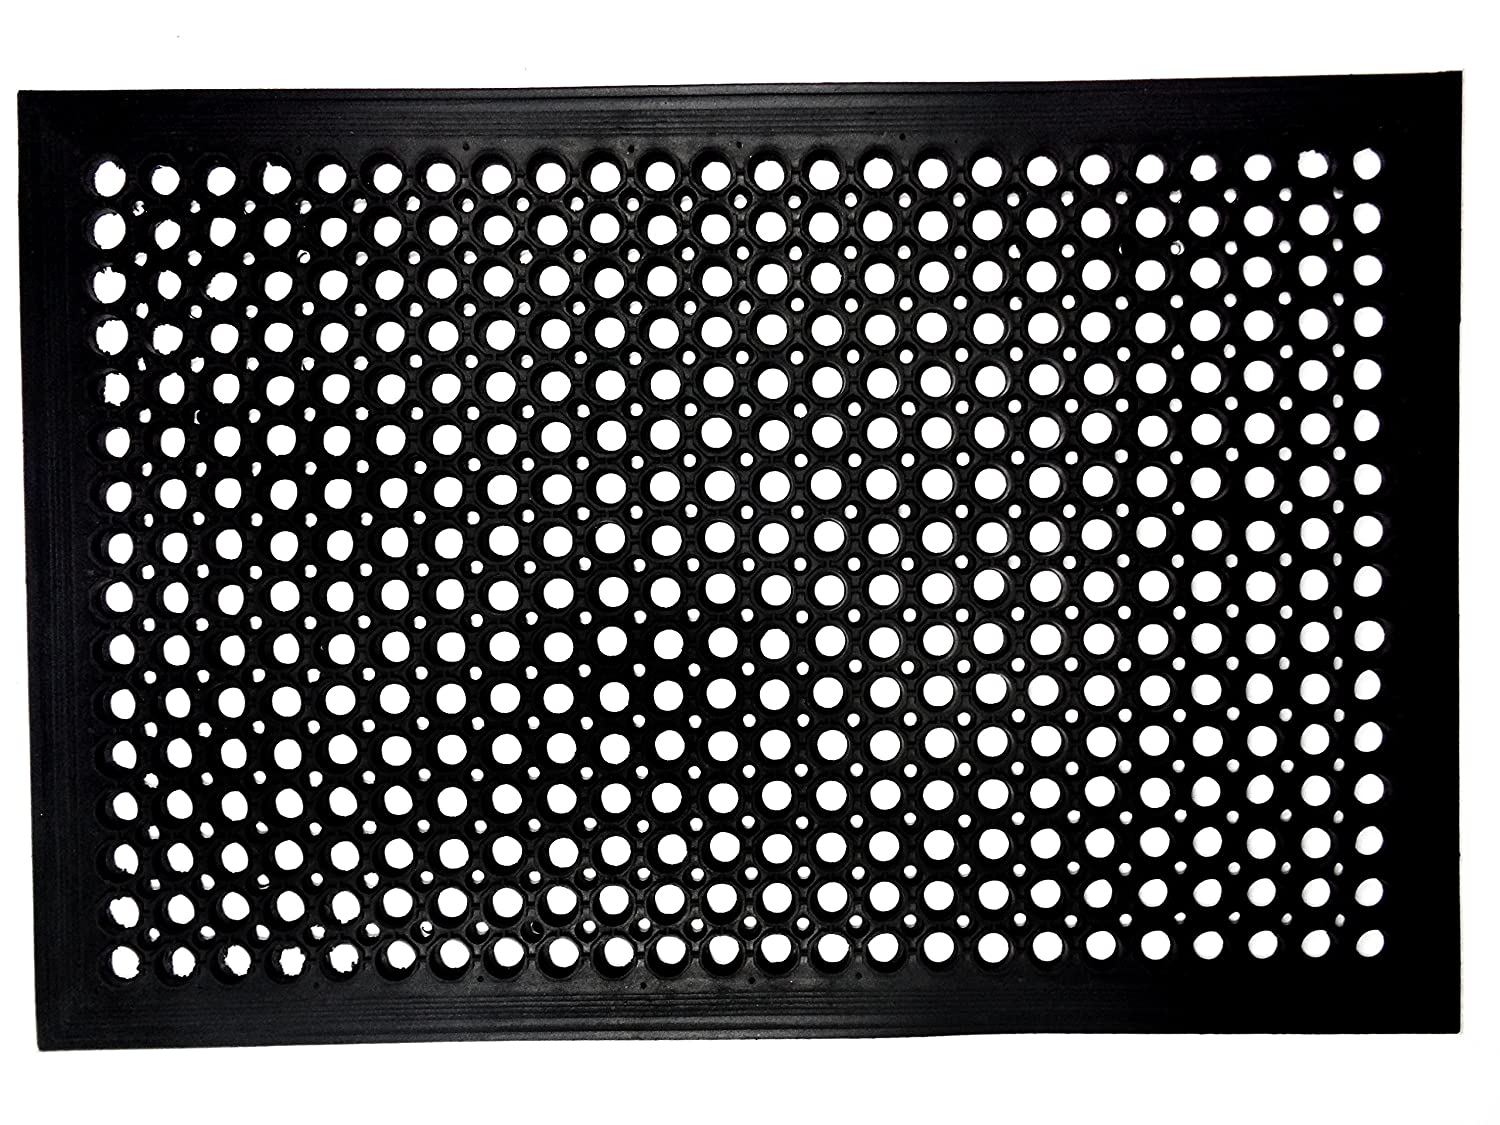 Iron Gate - 2 Piece Anti-Fatigue Anti-Skid Ramp Restaurant Drainage Mat - 100% Solid Rubber - Size 24x36 - Heavy Duty Rugged Commercial Professional Grade Construction